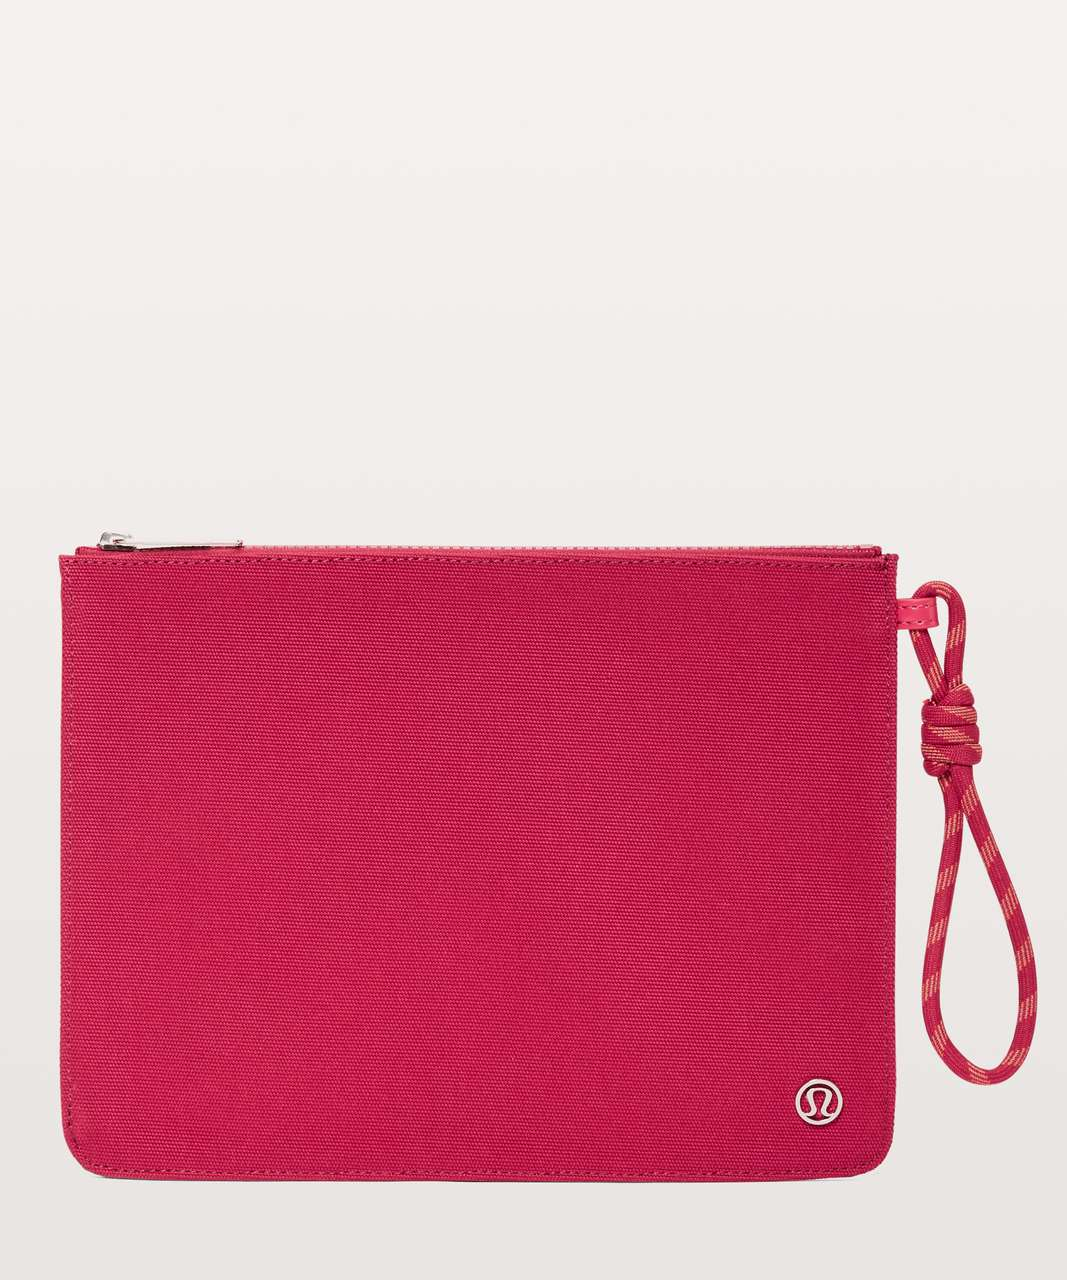 Lululemon All Zipped Up Pouch - Ruby Red